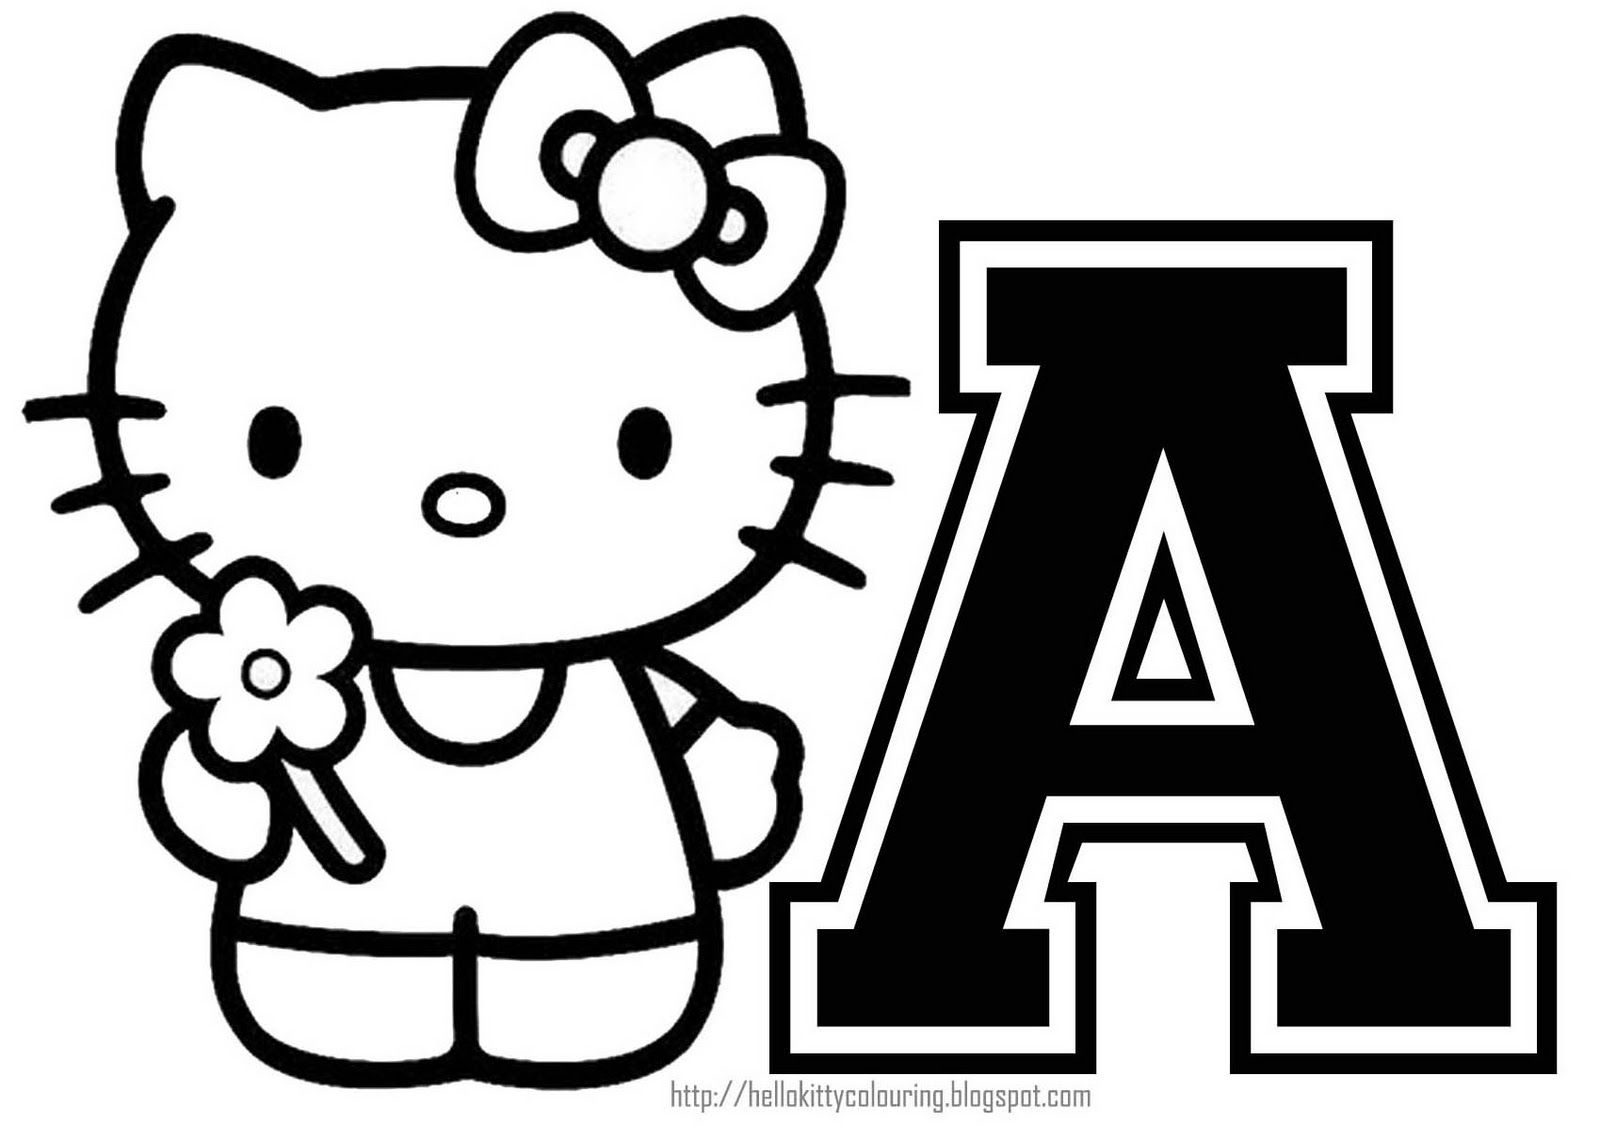 Hello kitty coloring book pages to print - Free Printable Hello Kitty Coloring Pages Party Invitations Activity Sheets And Paper Crafts For Hello Kitty Fans The World Over